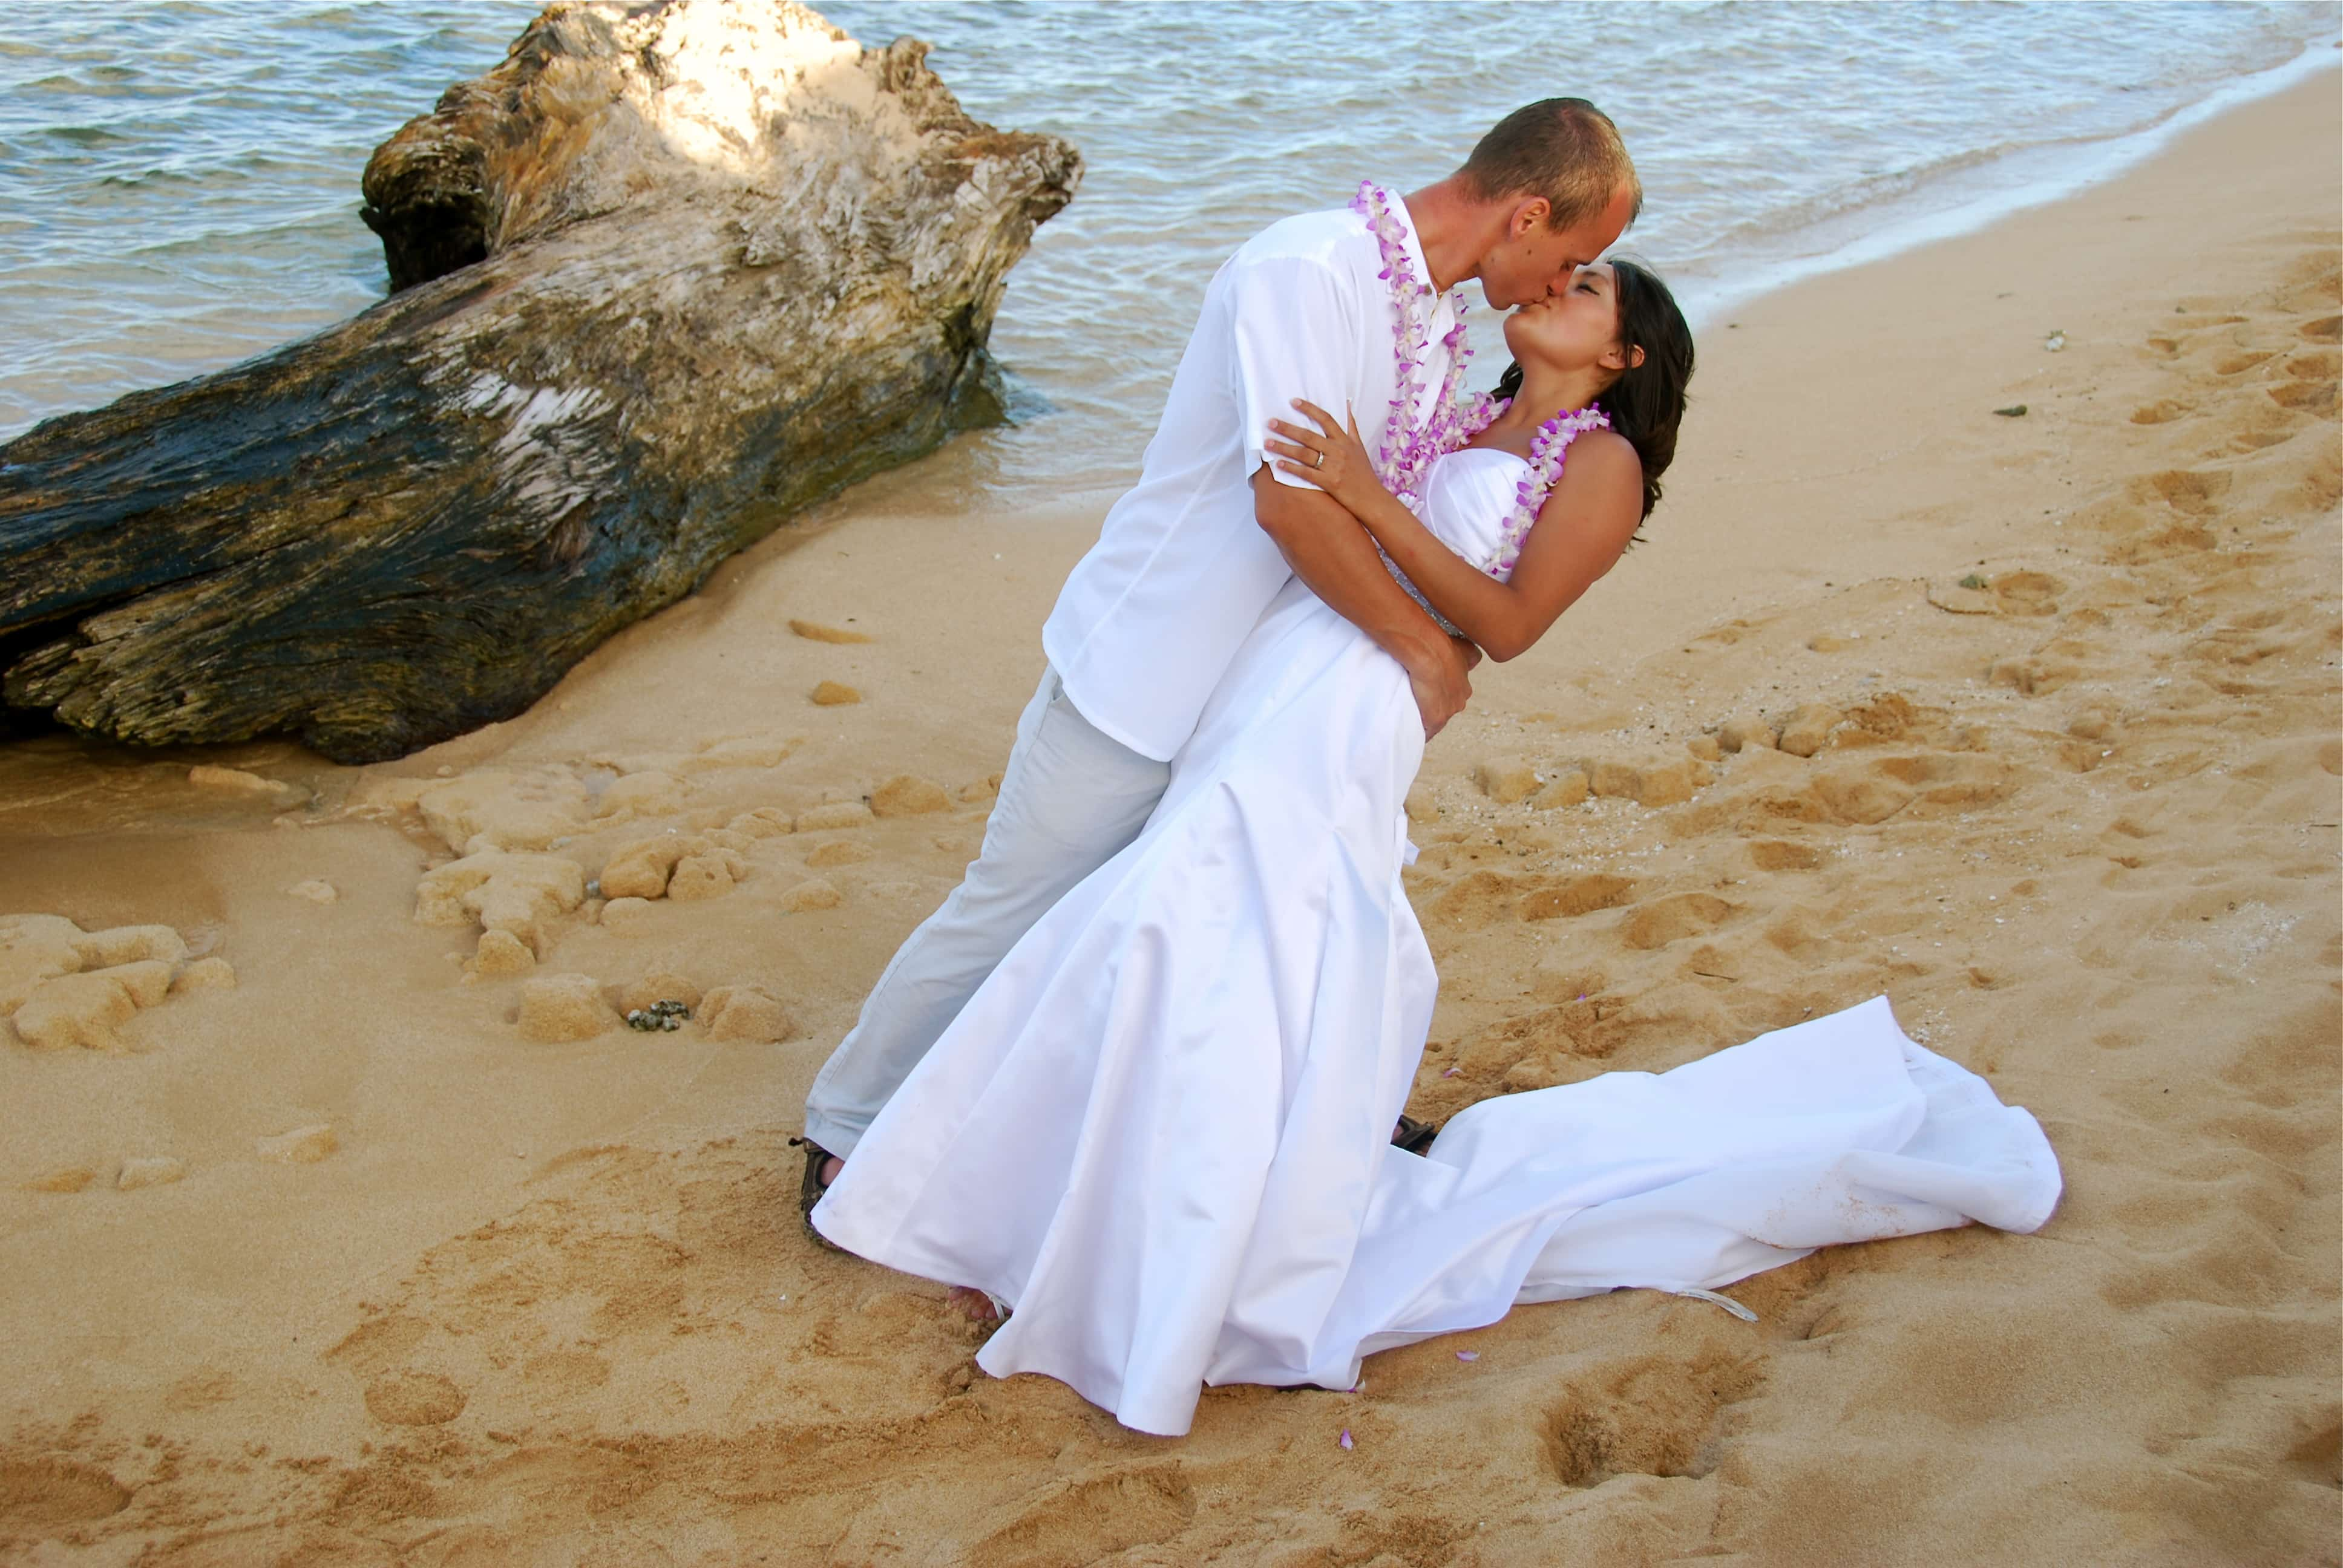 What You Need To Know About Kauai Beach Weddings And Hawaii In General